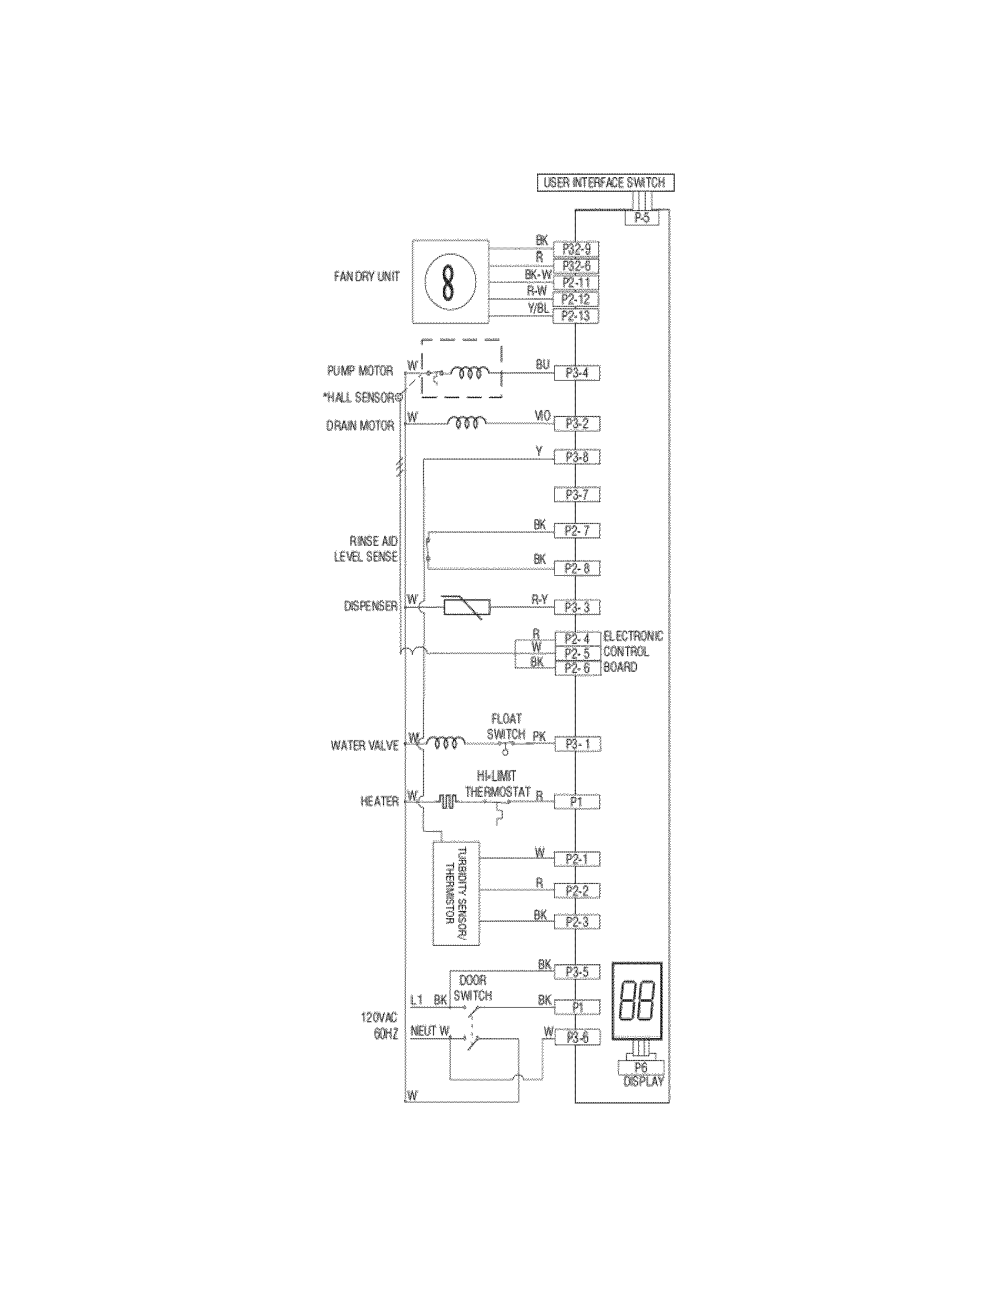 medium resolution of frigidaire dishwasher wiring diagram 36 wiring diagram images